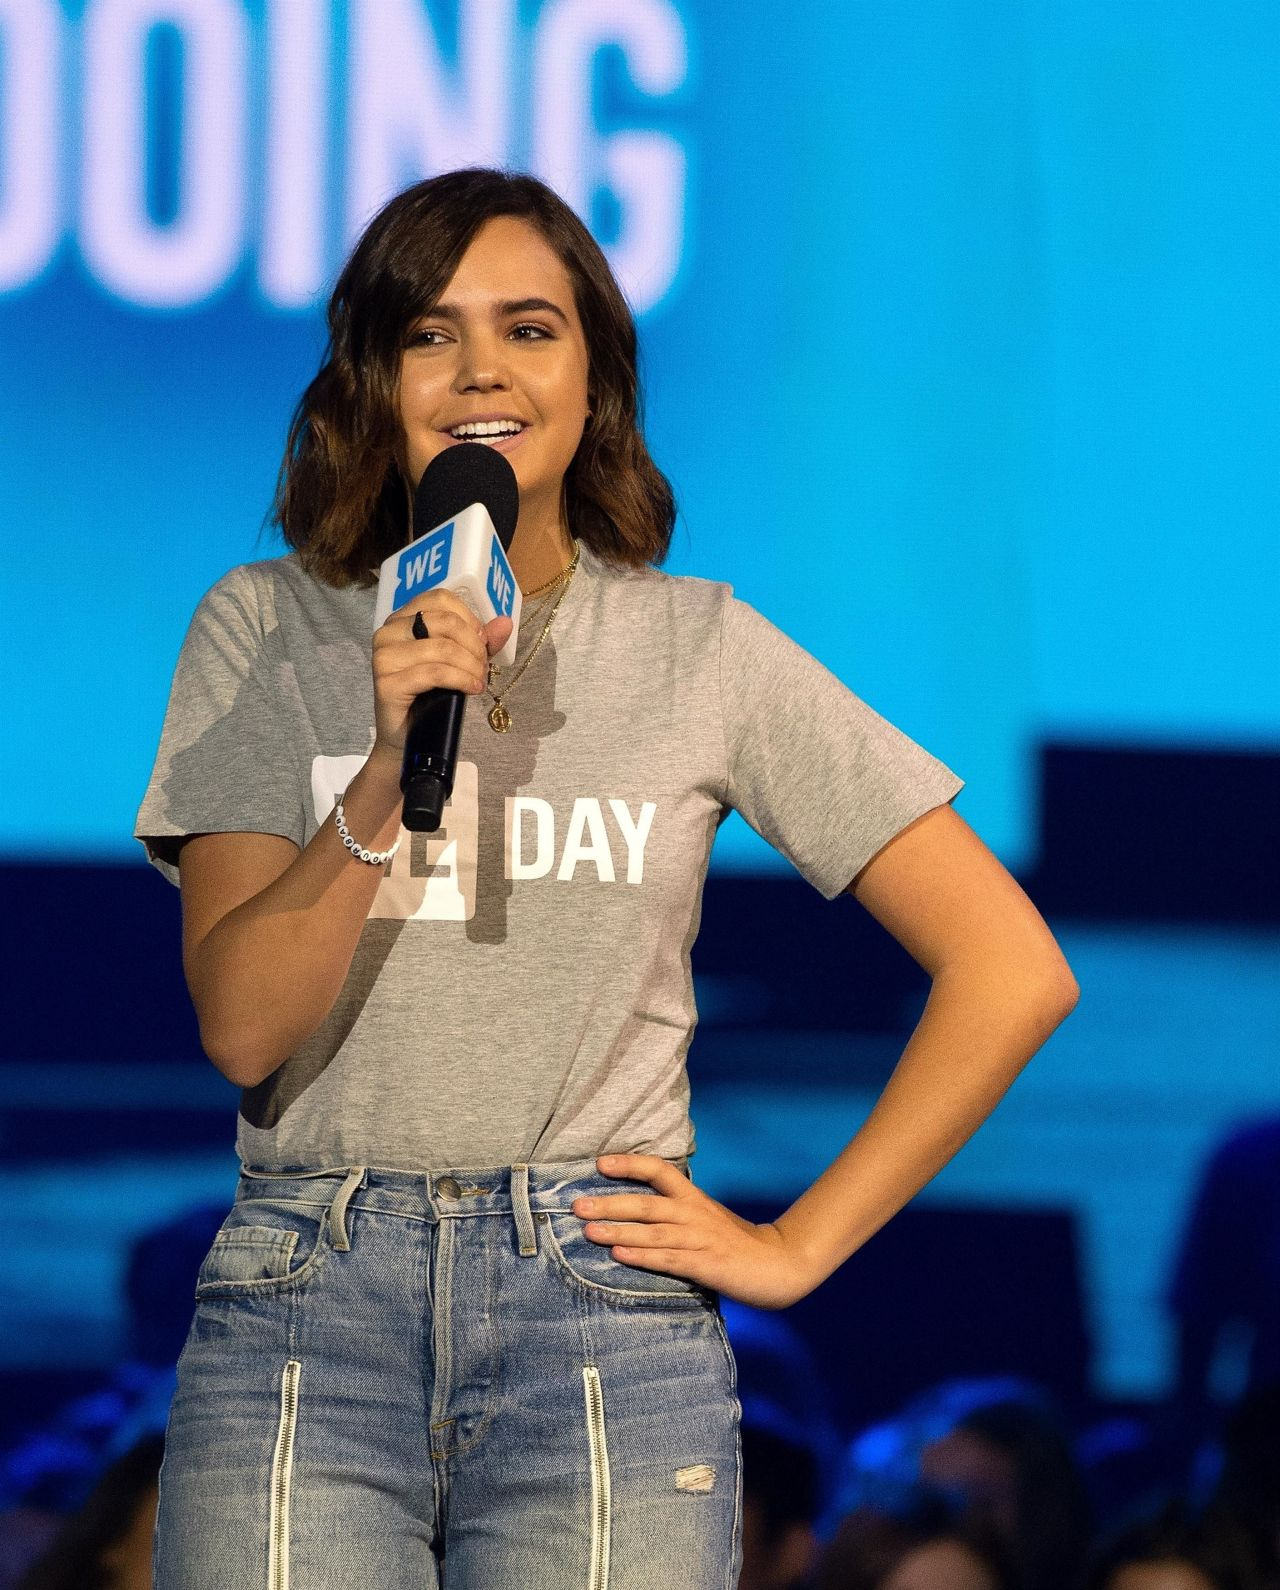 bailee-madison-we-day-in-chicago-05-08-2019-1